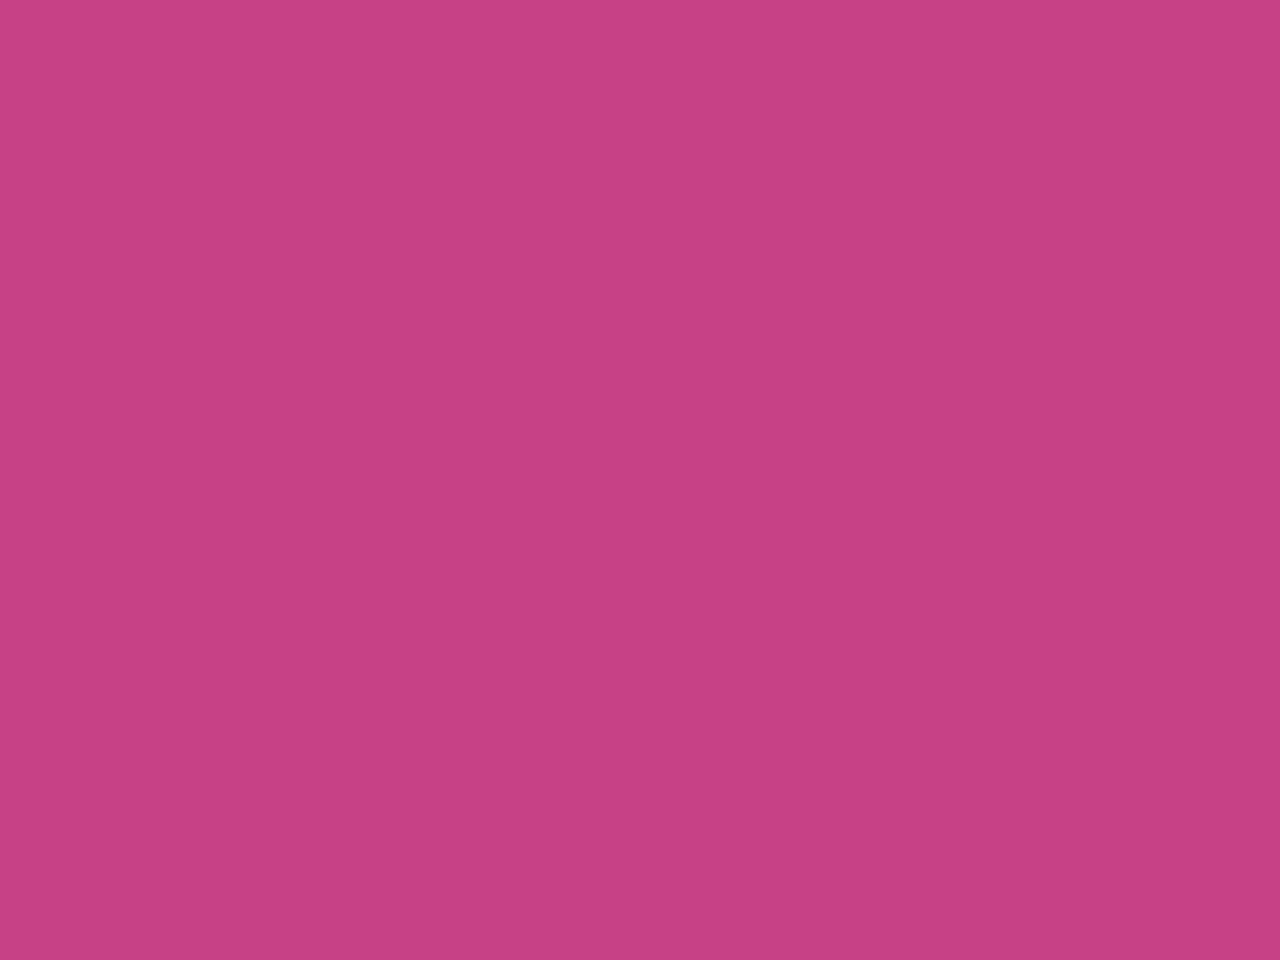 1280x960 Smitten Solid Color Background